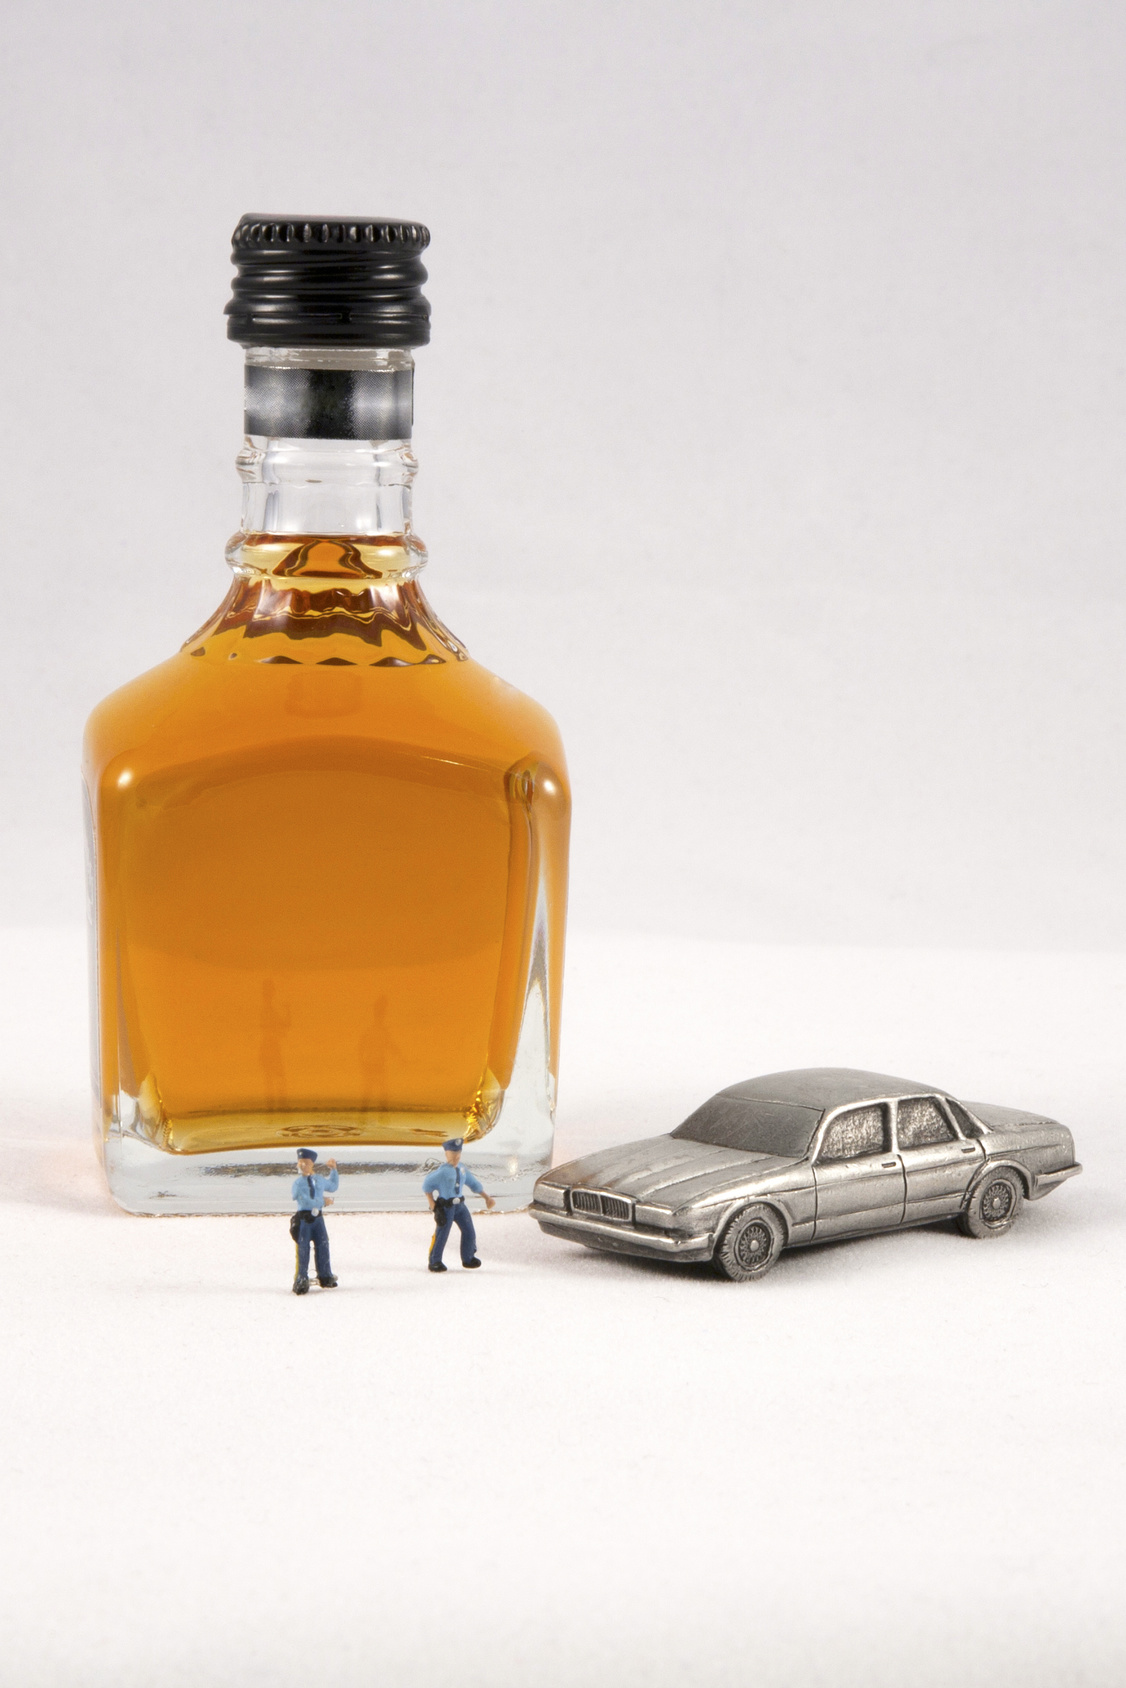 Drinking and Driving Concept and if you need a skilled DUI attorney look in Flint.